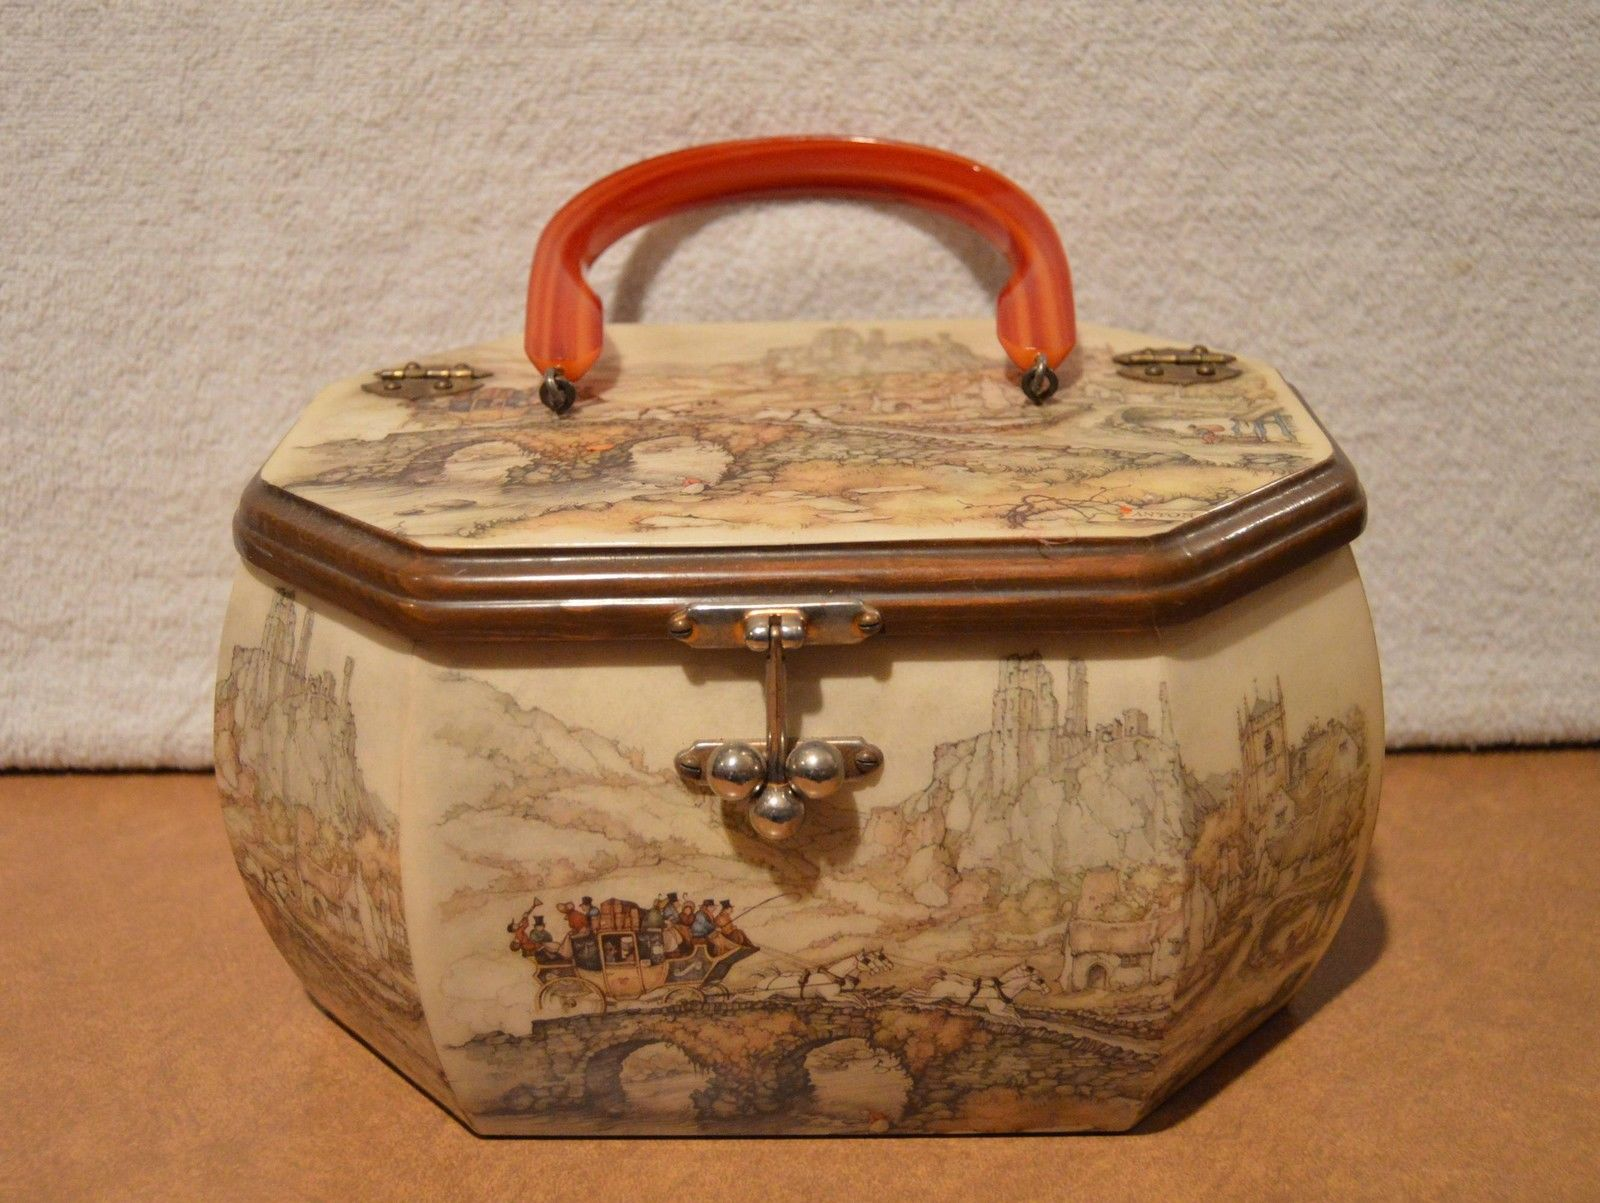 Vintage Anton Pieck Wood Box Purse Decoupage Art Print